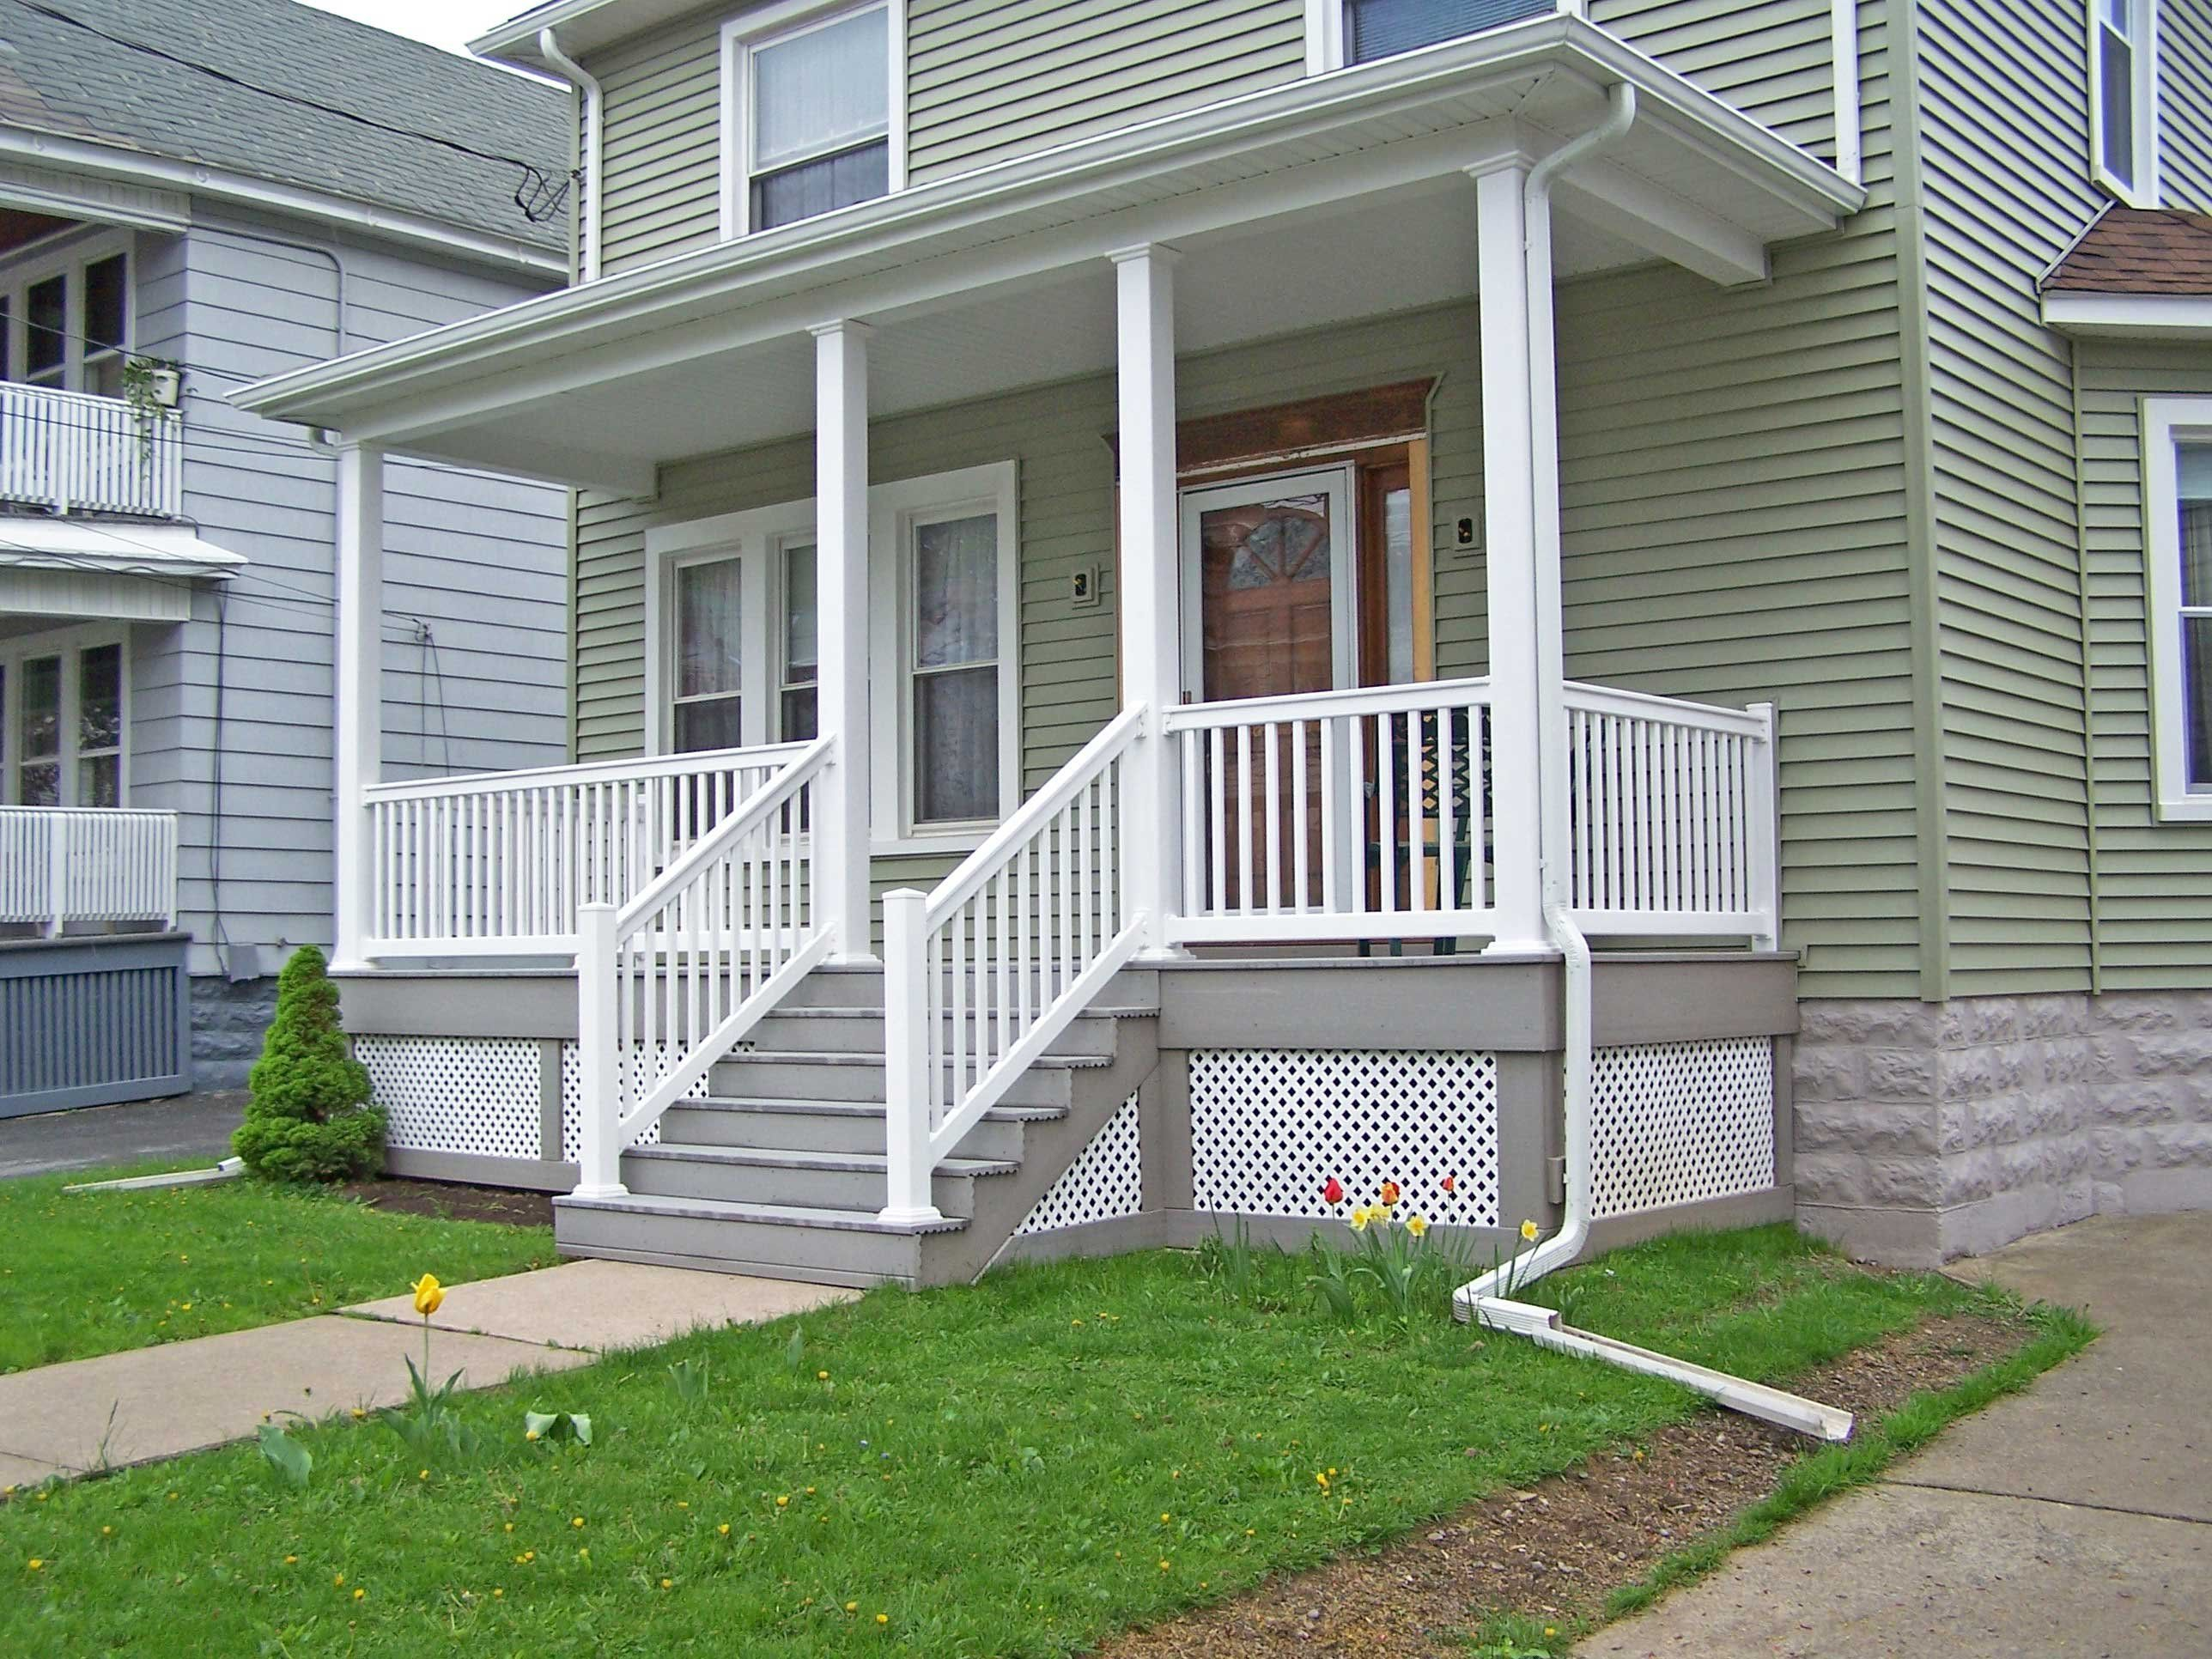 article ideas asfancy columns porch luxury railing excellent front exceptional com further